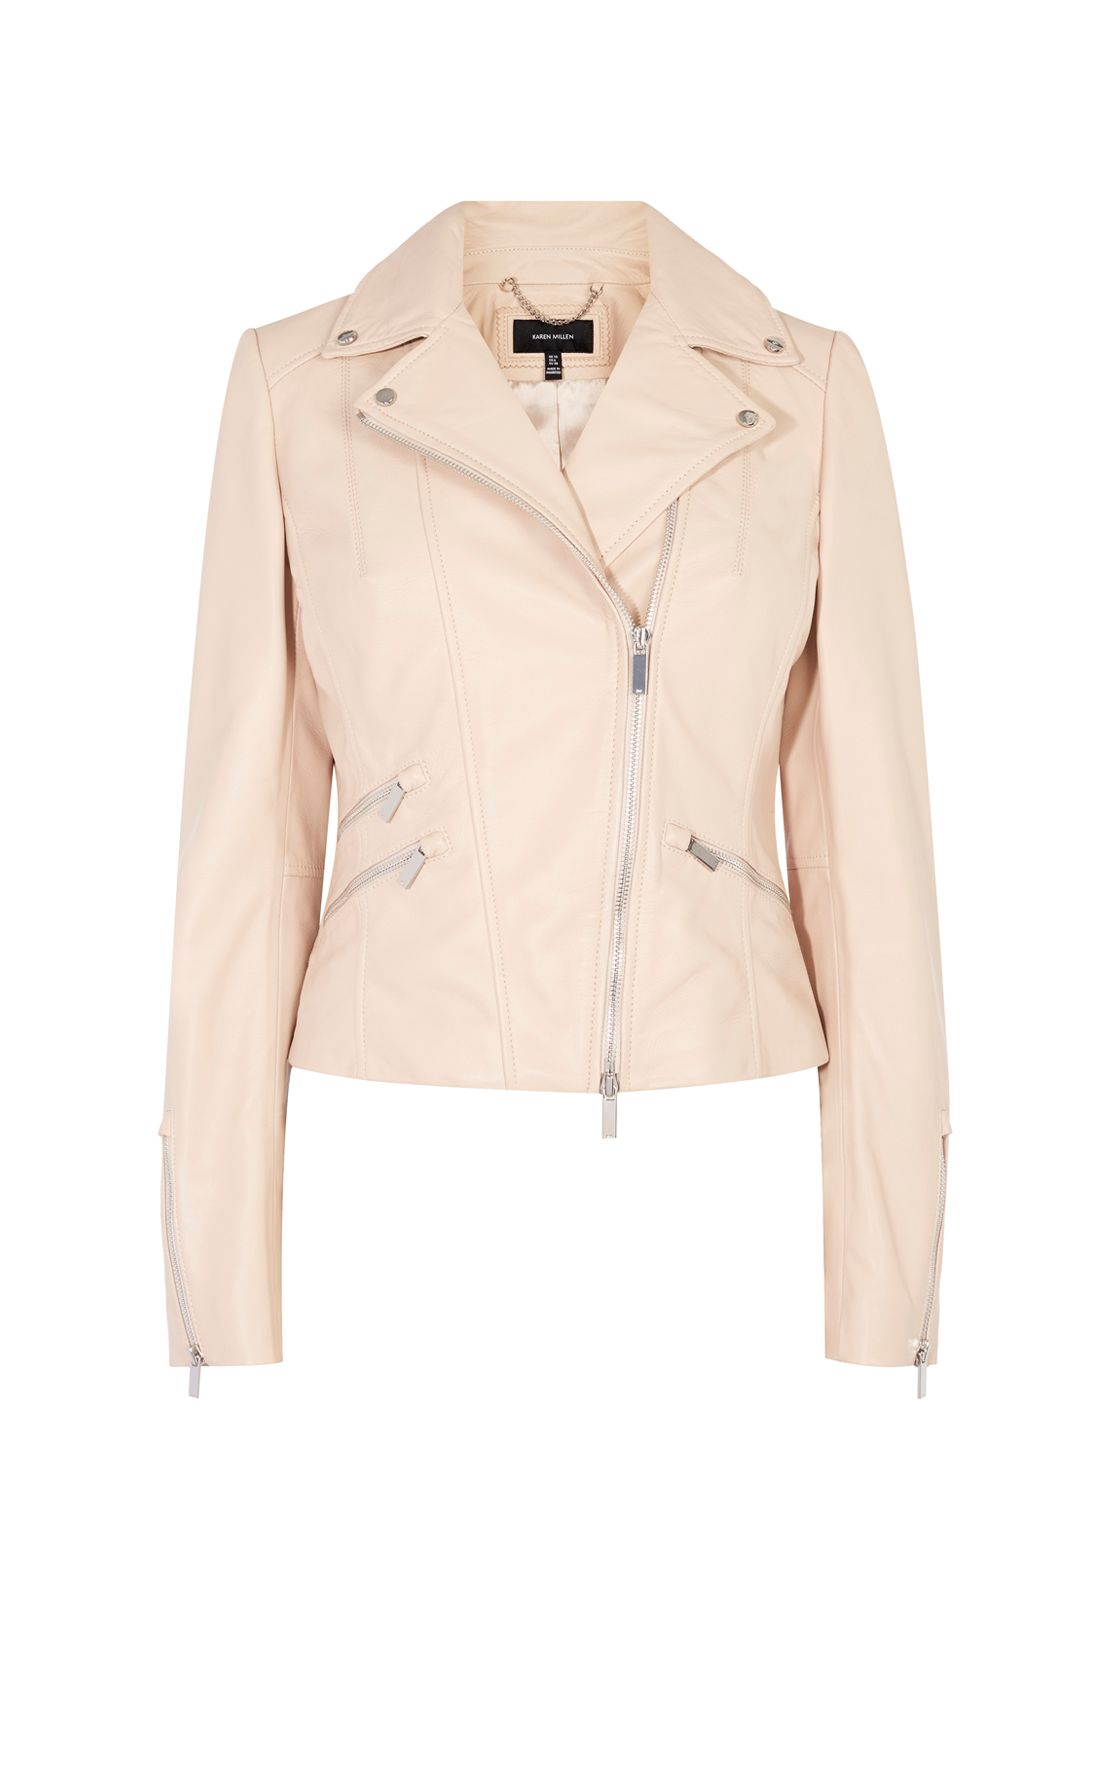 Karen Millen Nude Leather Jacket, Pastel Pink